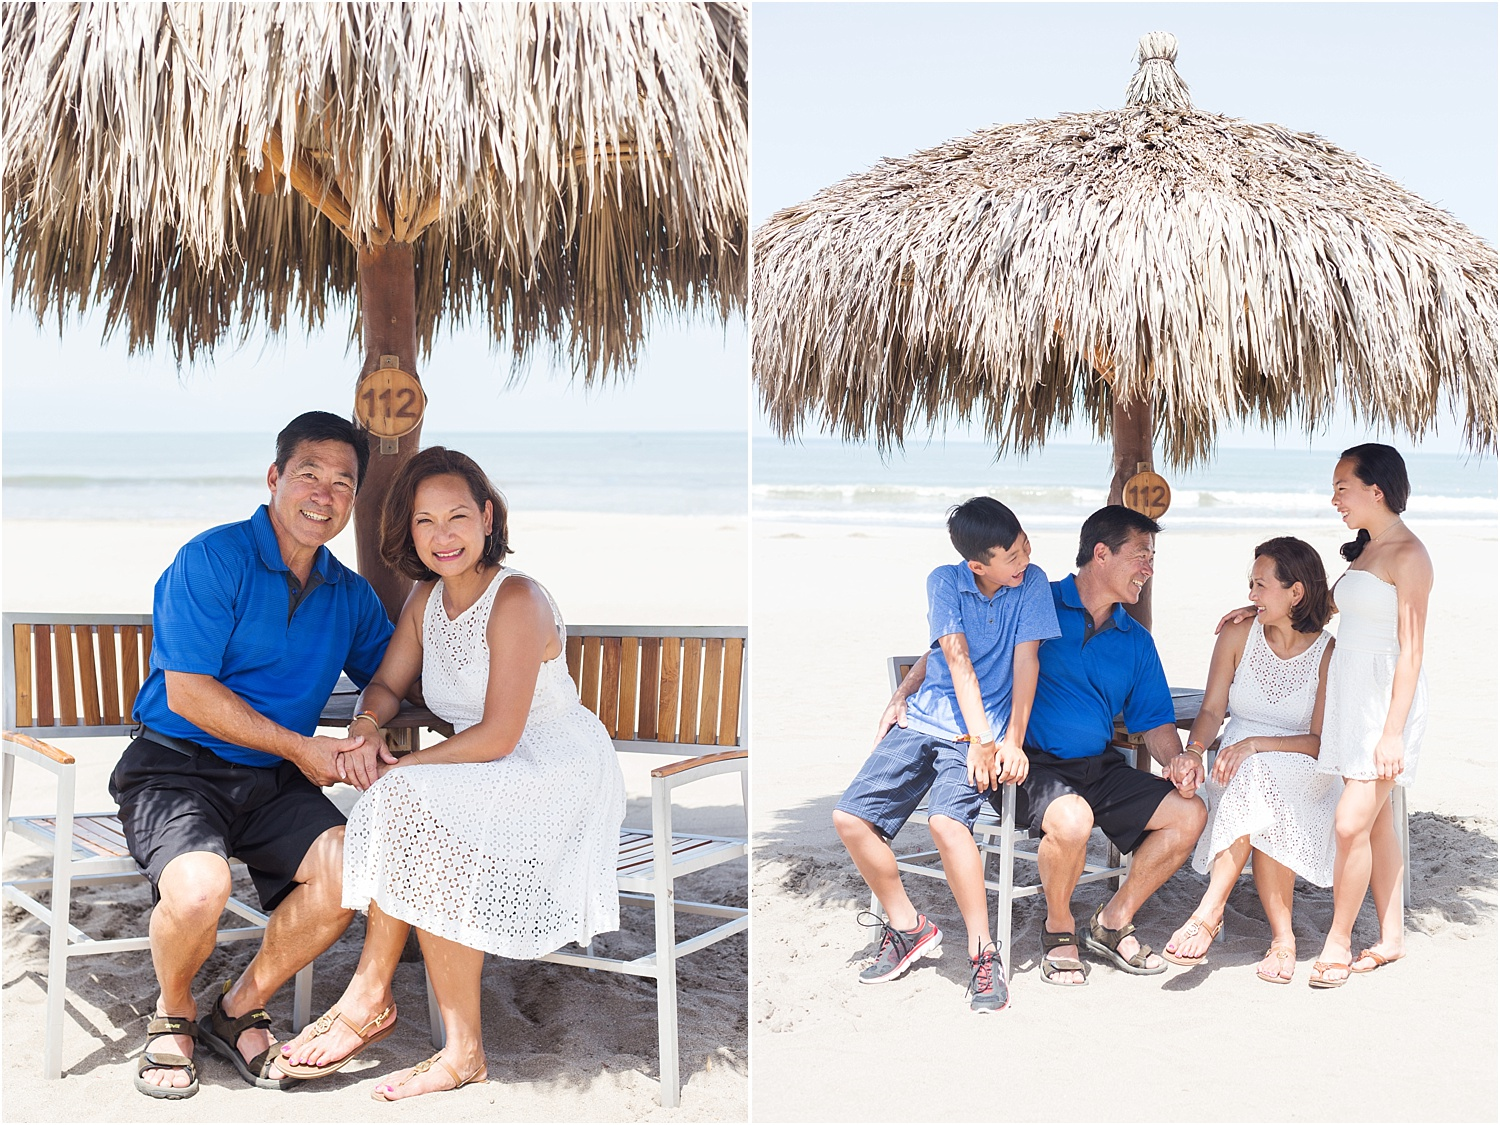 family on the beach under a palm umbrella - How to do Portrait Photography in Bright Midday Sun